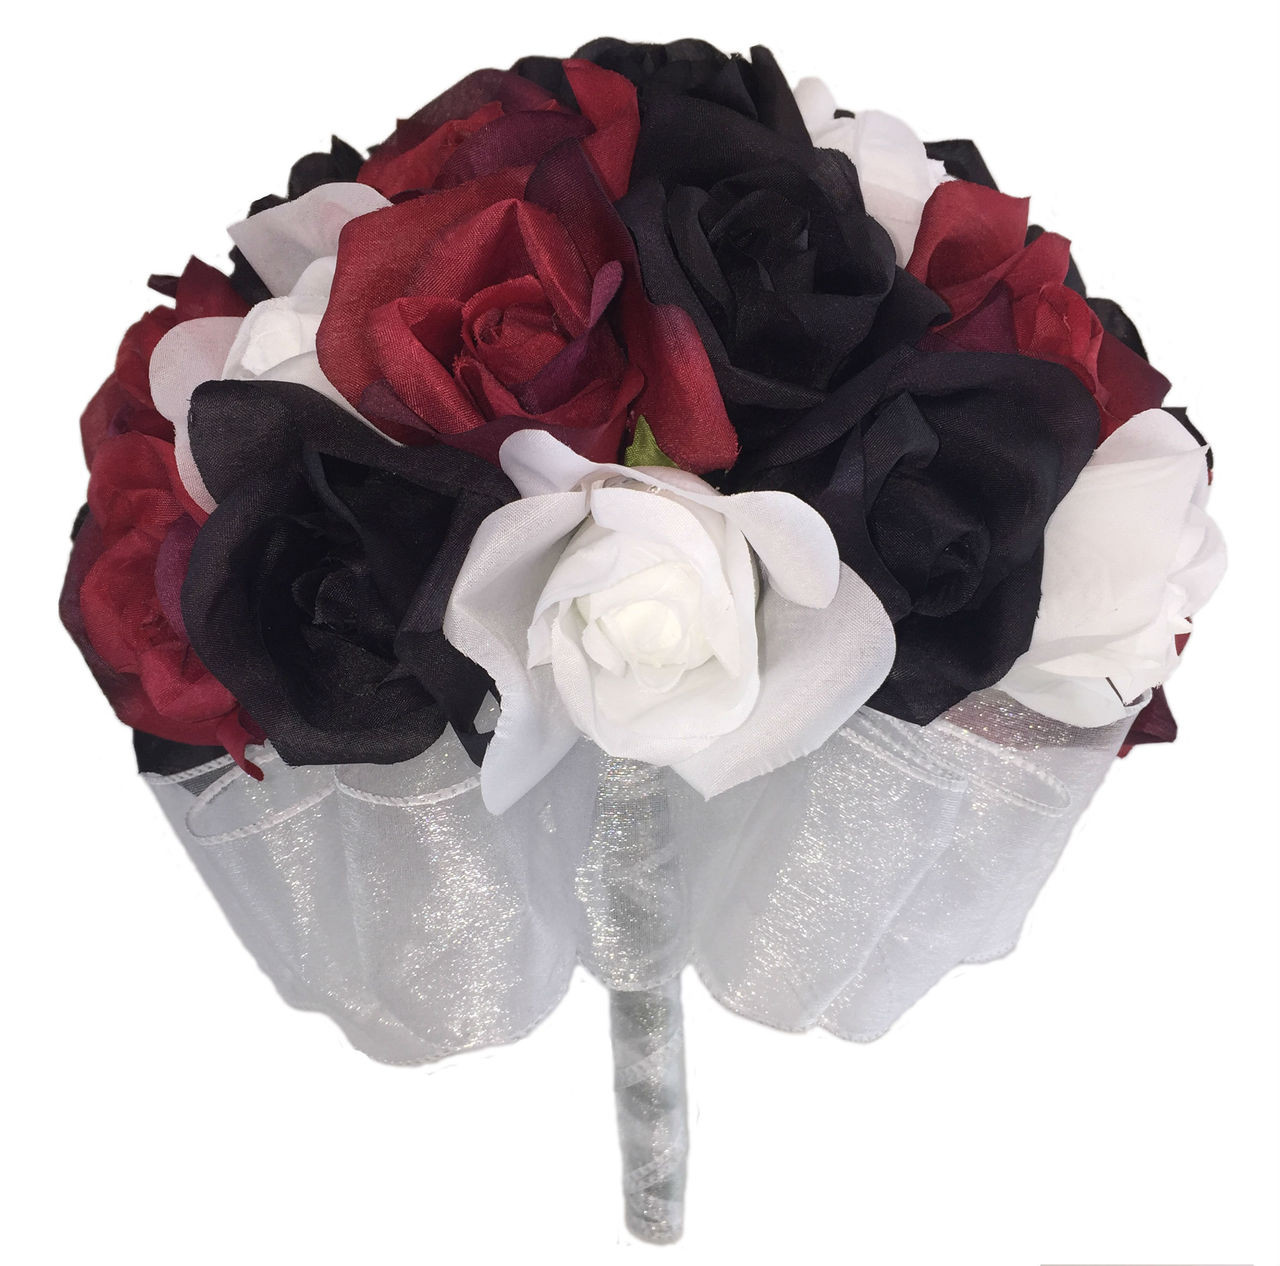 24 Roses Red Black White Silk Flower Bridal Bouquet Wedding